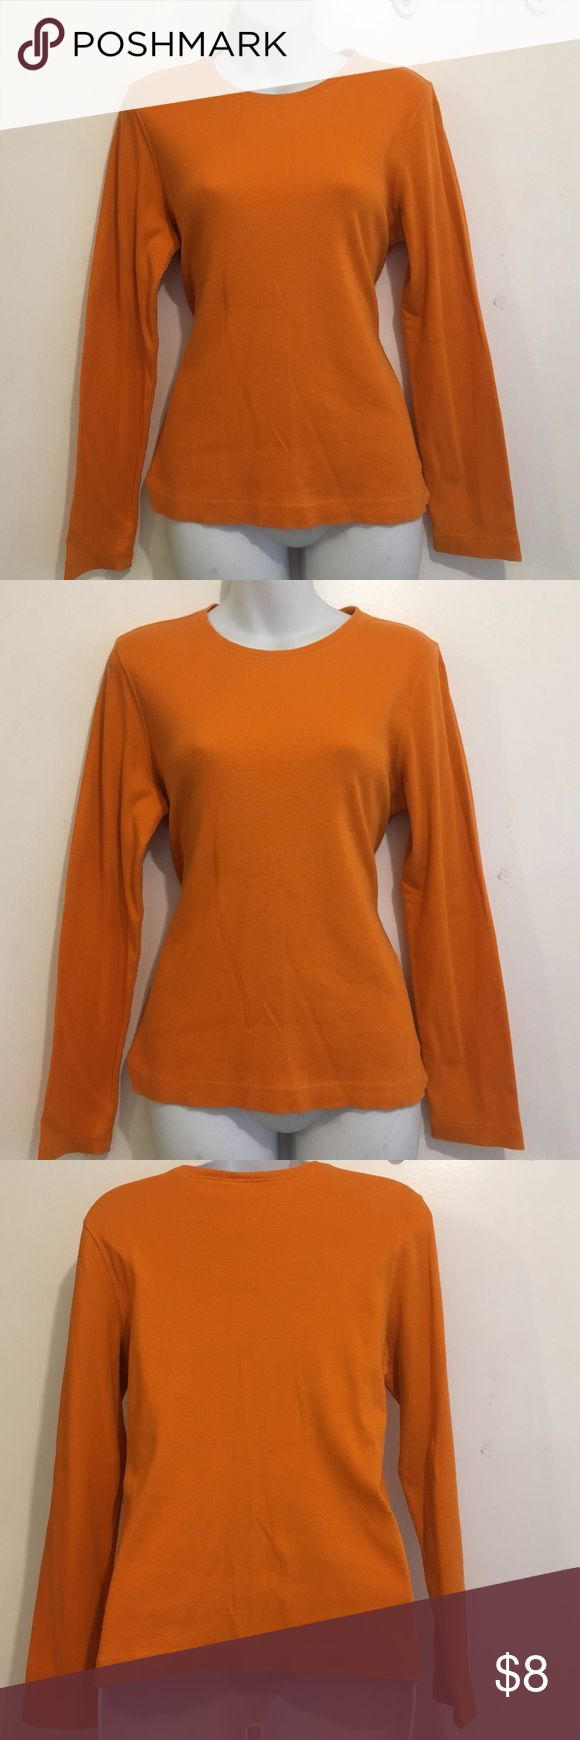 "Liz Claiborne Sz M Orange Long Sleeve Top 95% Cotton 5% Spandex- Beautiful Liz Claiborne Sz M Orange Long Sleeve Top... Measurements laying flat; Armpit to Armpit: 19"" Shoulder to Hem: 23"" Liz Claiborne Tops Tees - Long Sleeve"